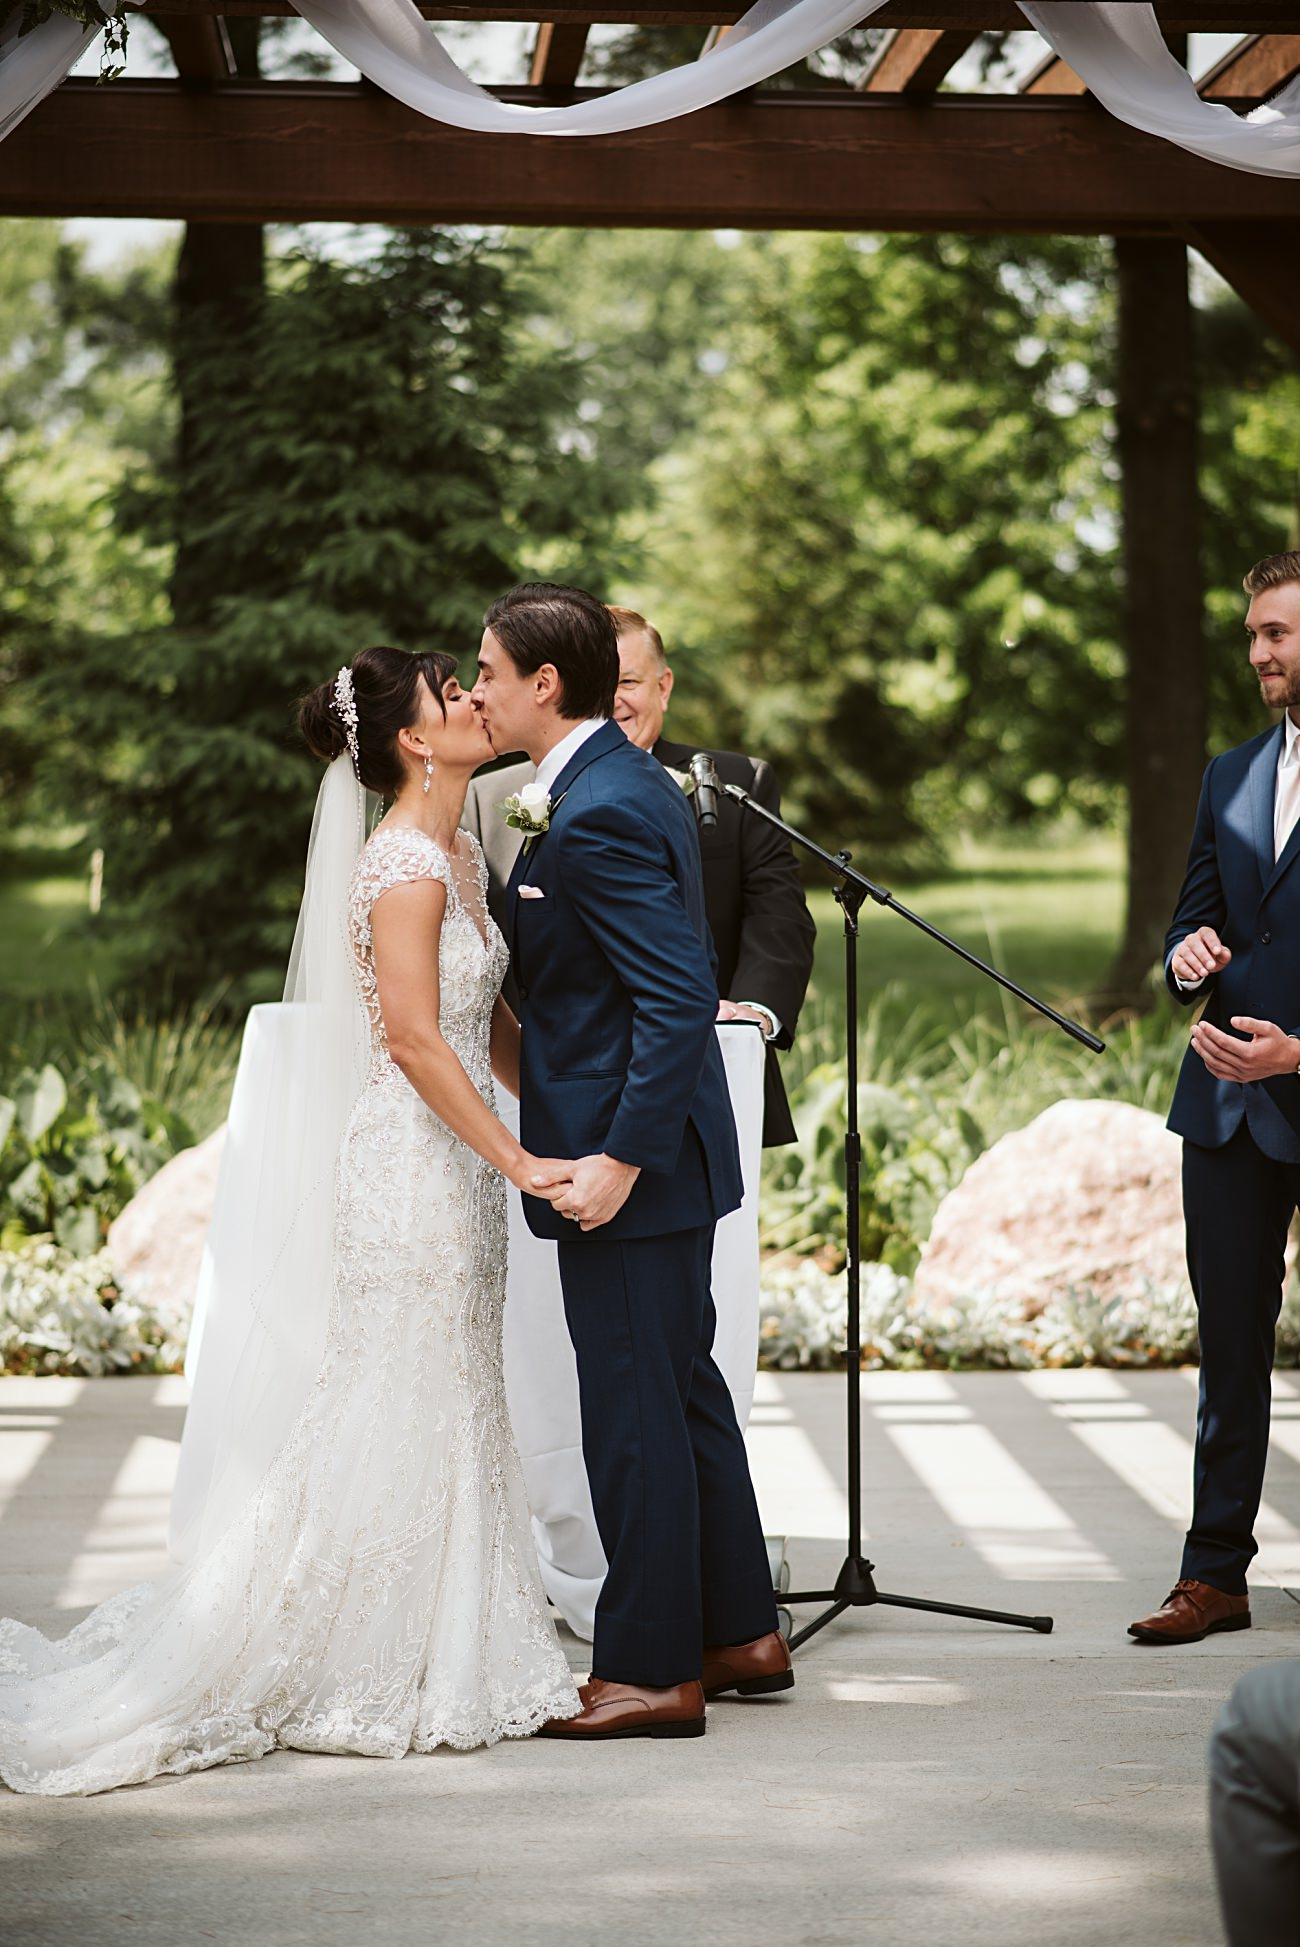 Ceremony Photos, Navy Grooms Suit, Modern Pink Wedding in Wisconsin - Golf Course Wedding - Madison WI Wedding Photographer, Natural Intuition Photography